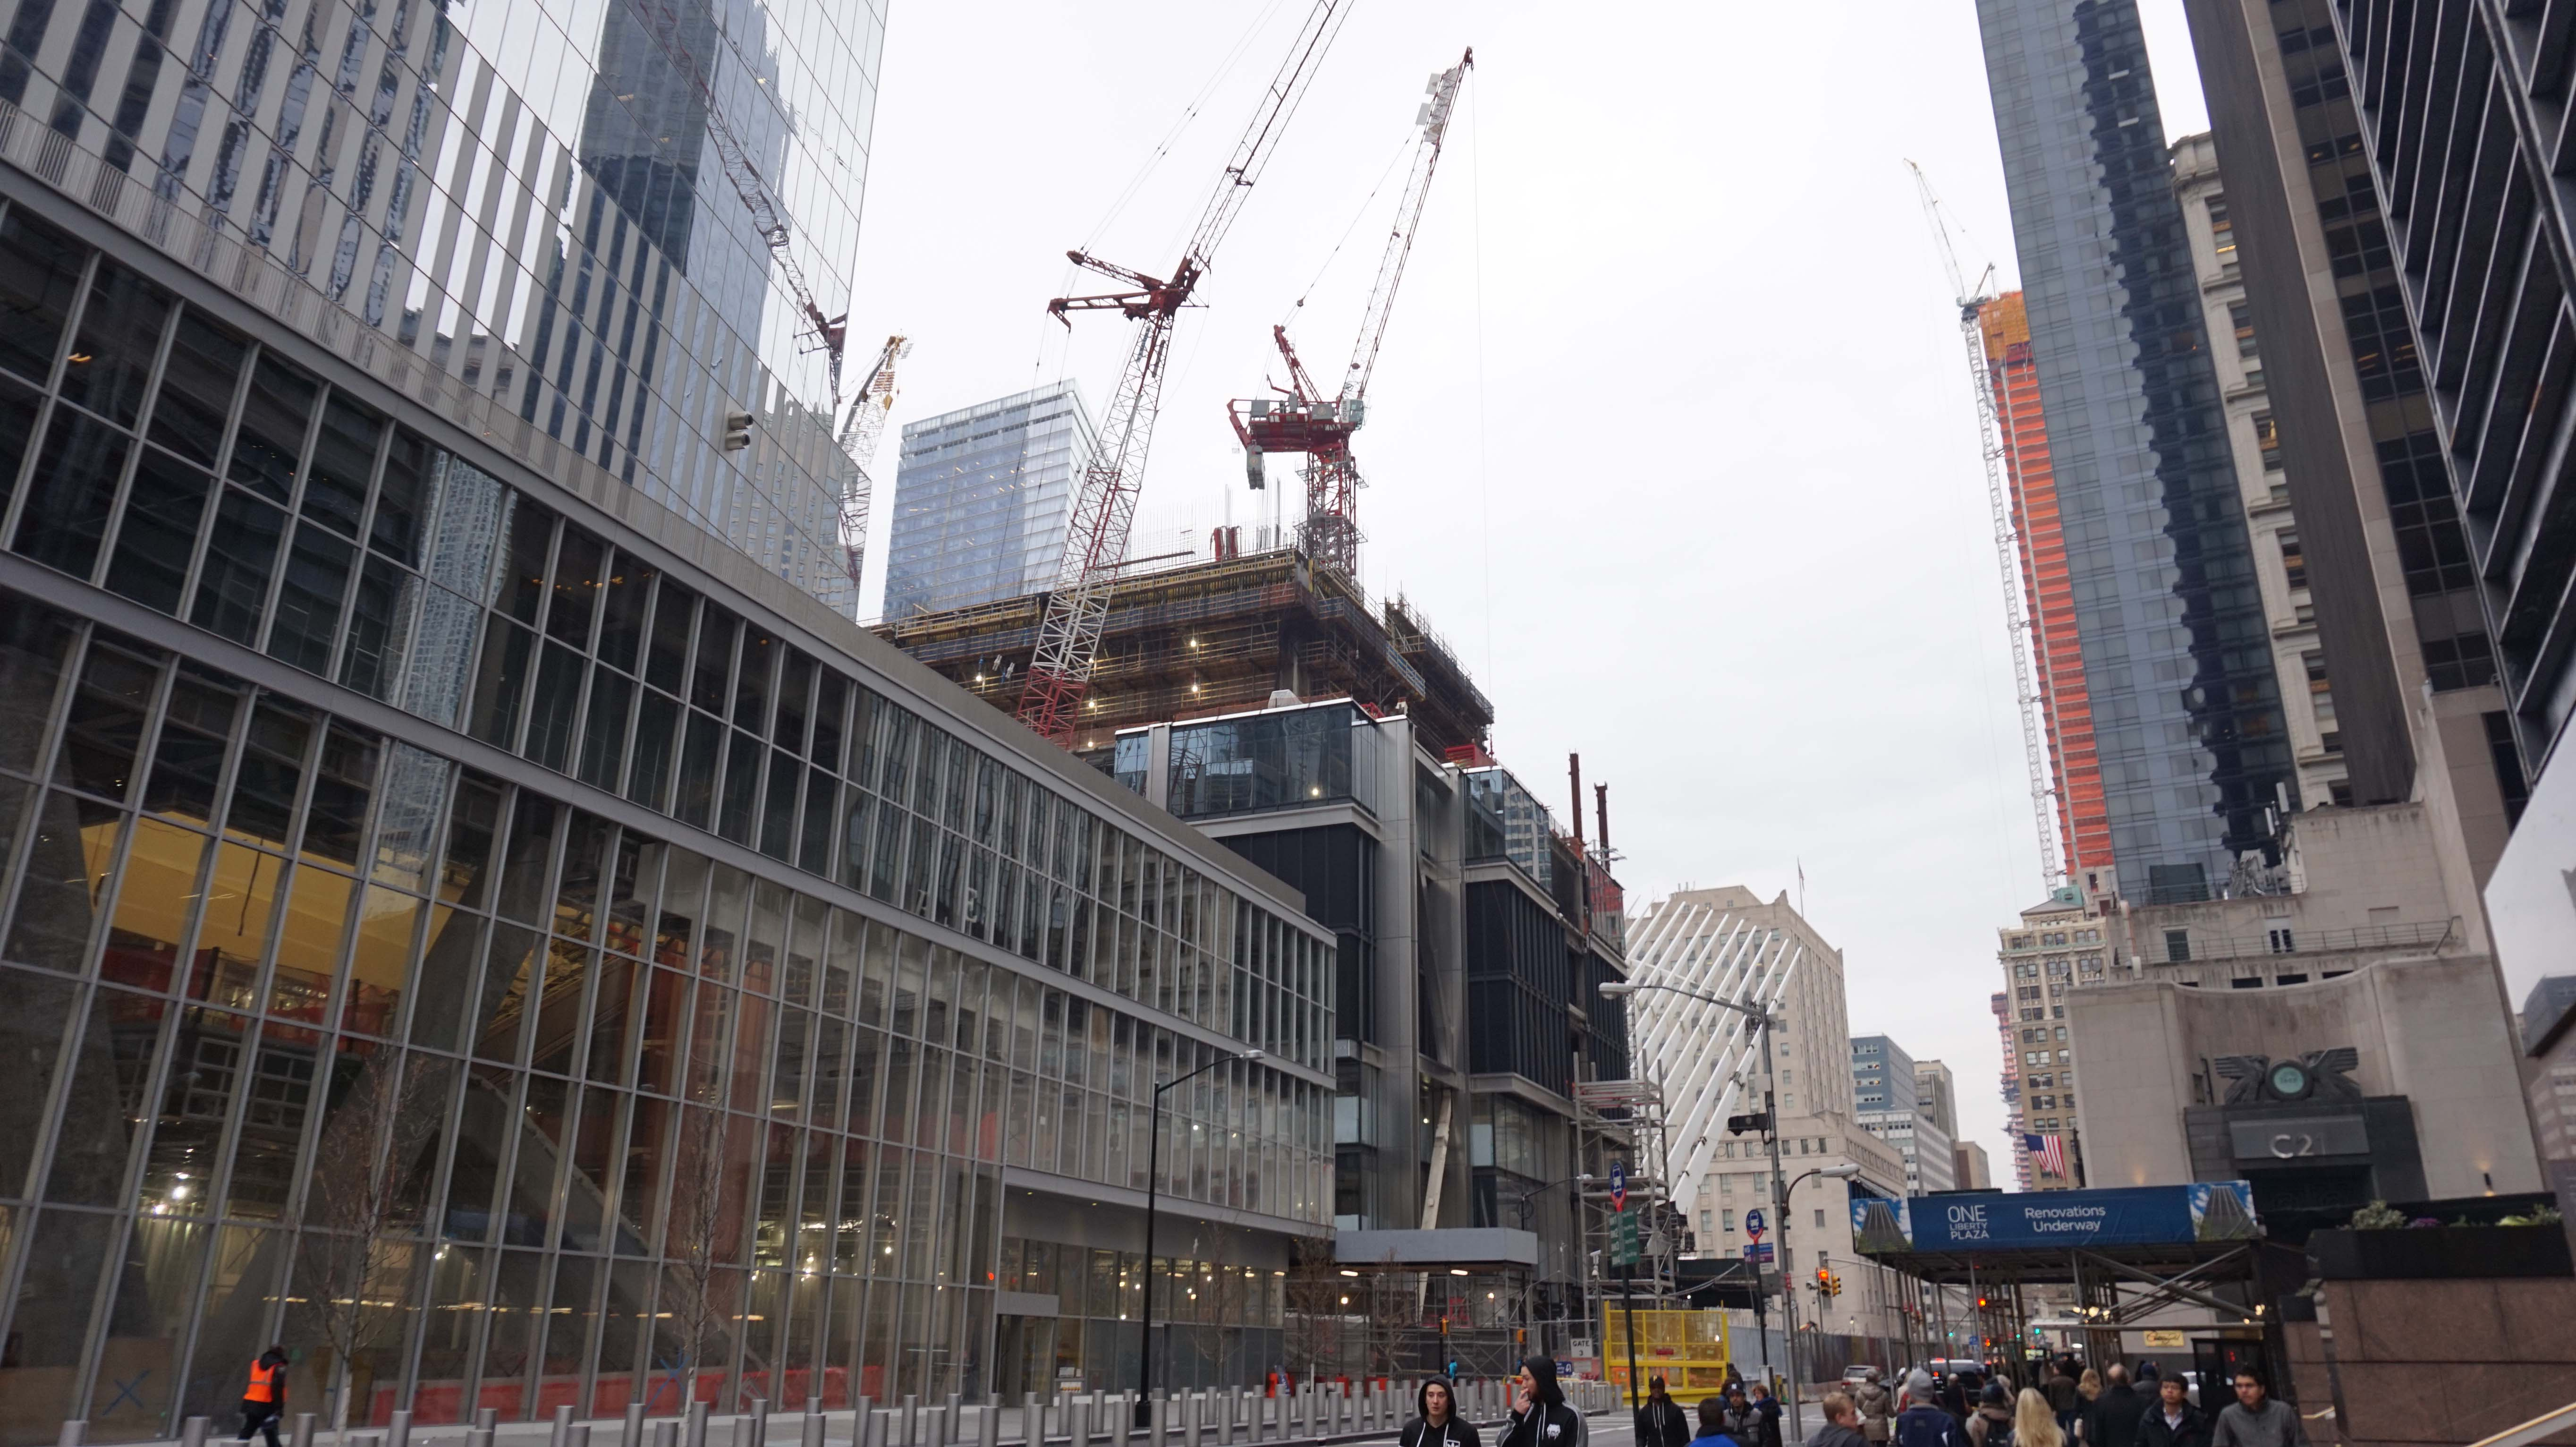 WTC Tower 3 11-30-2014